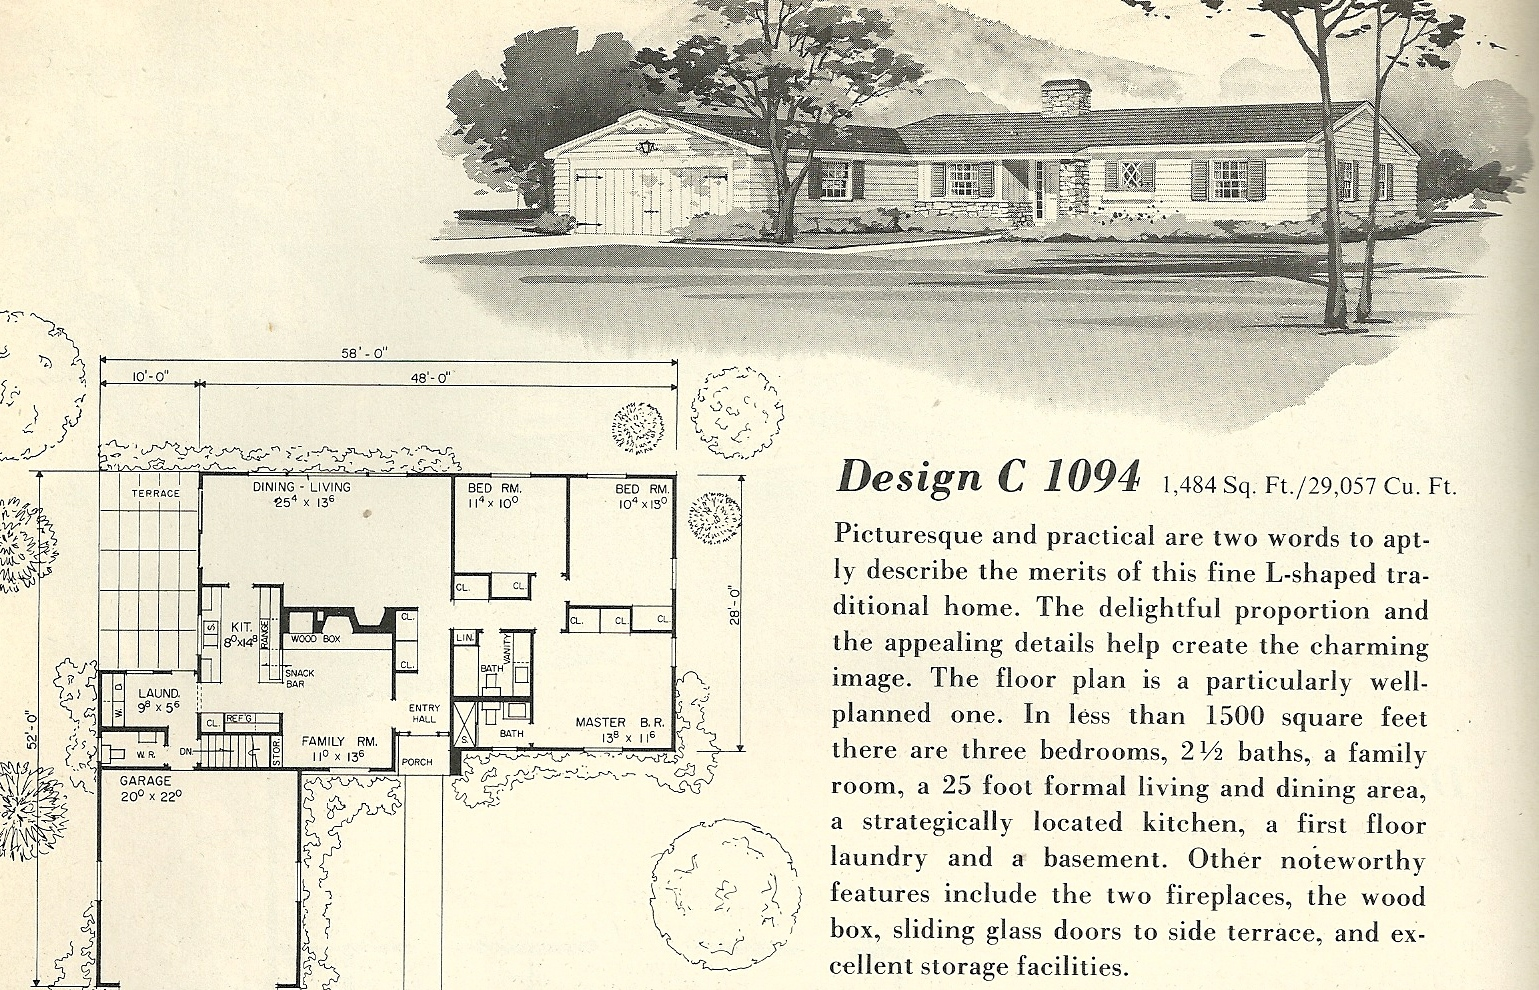 Vintage house plans 1094 antique alter ego for 1960 s home plans